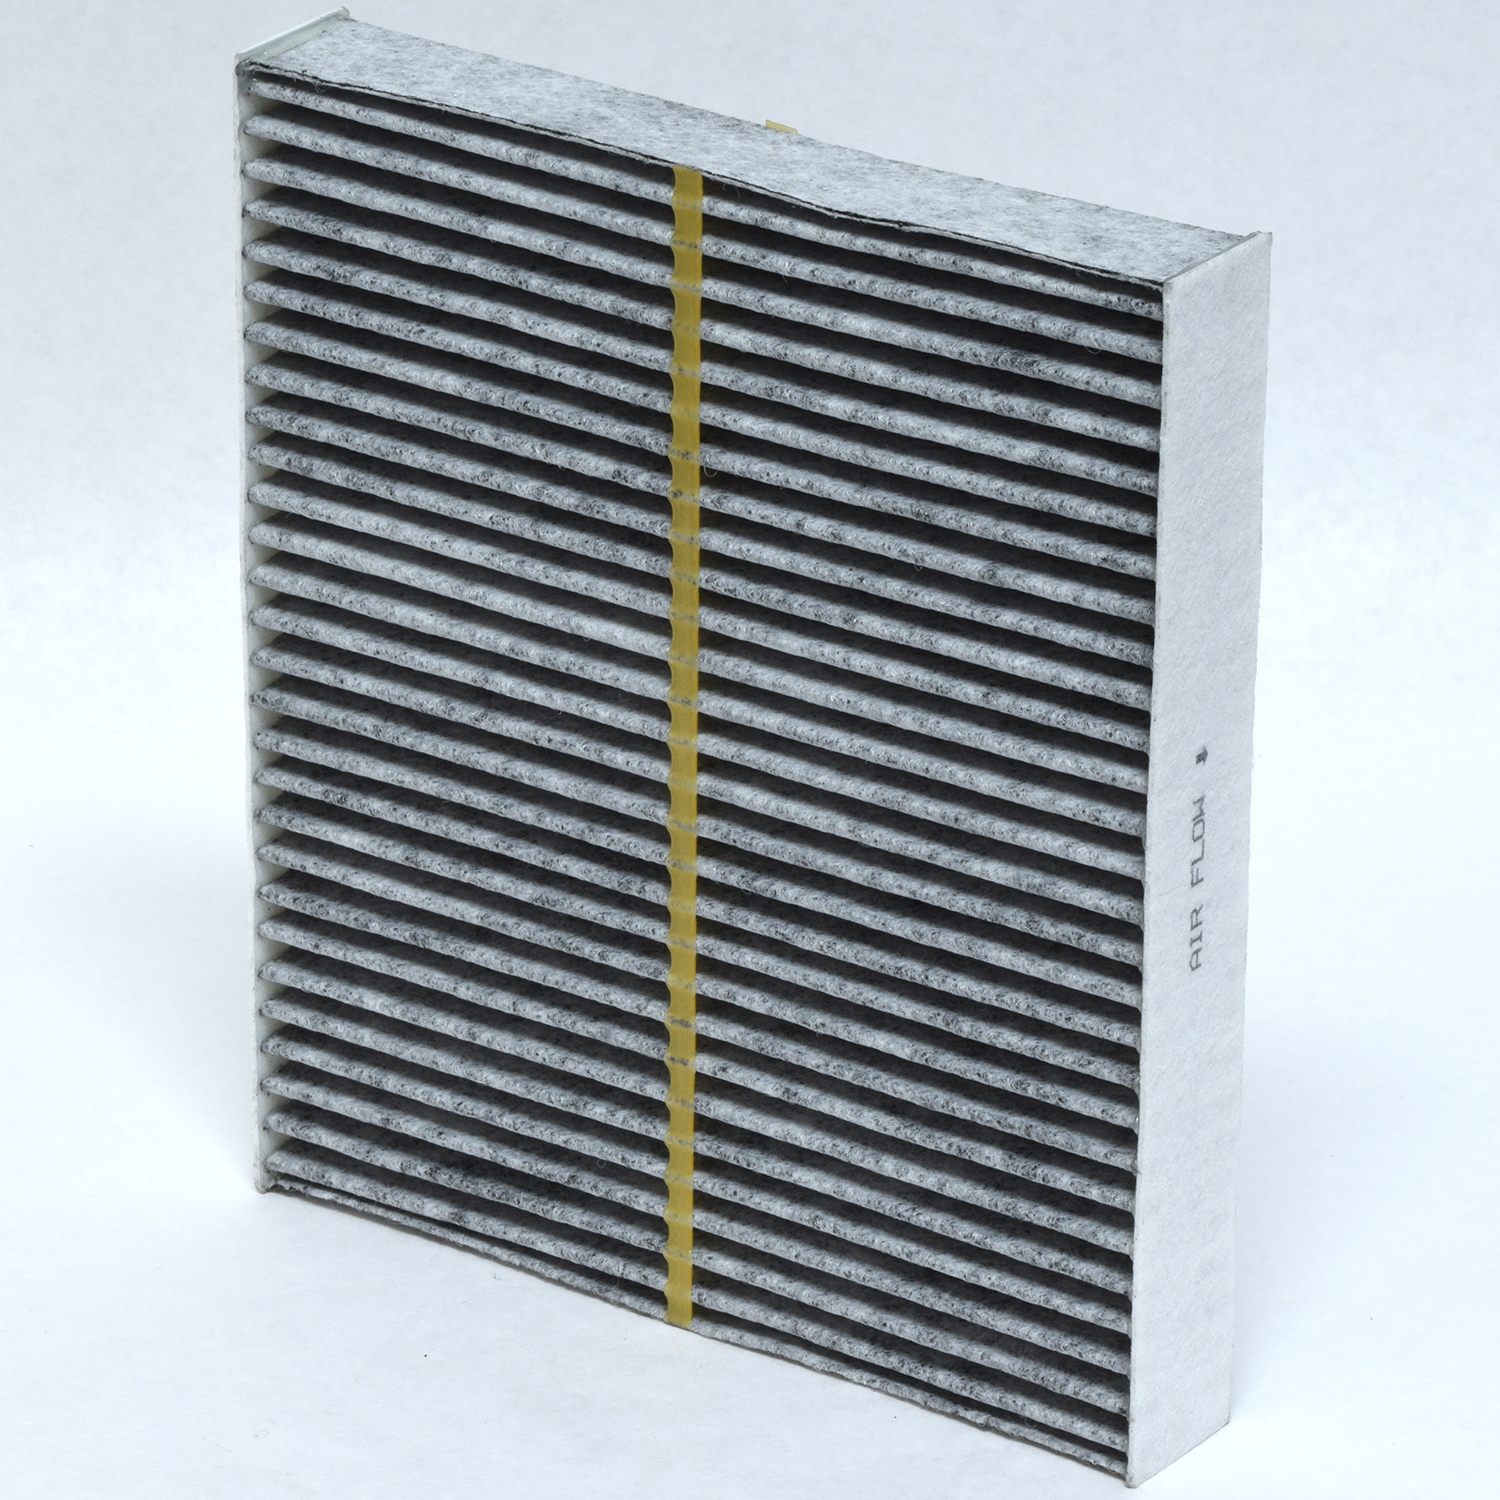 Charcoal Cabin Air Filter FI 1337C